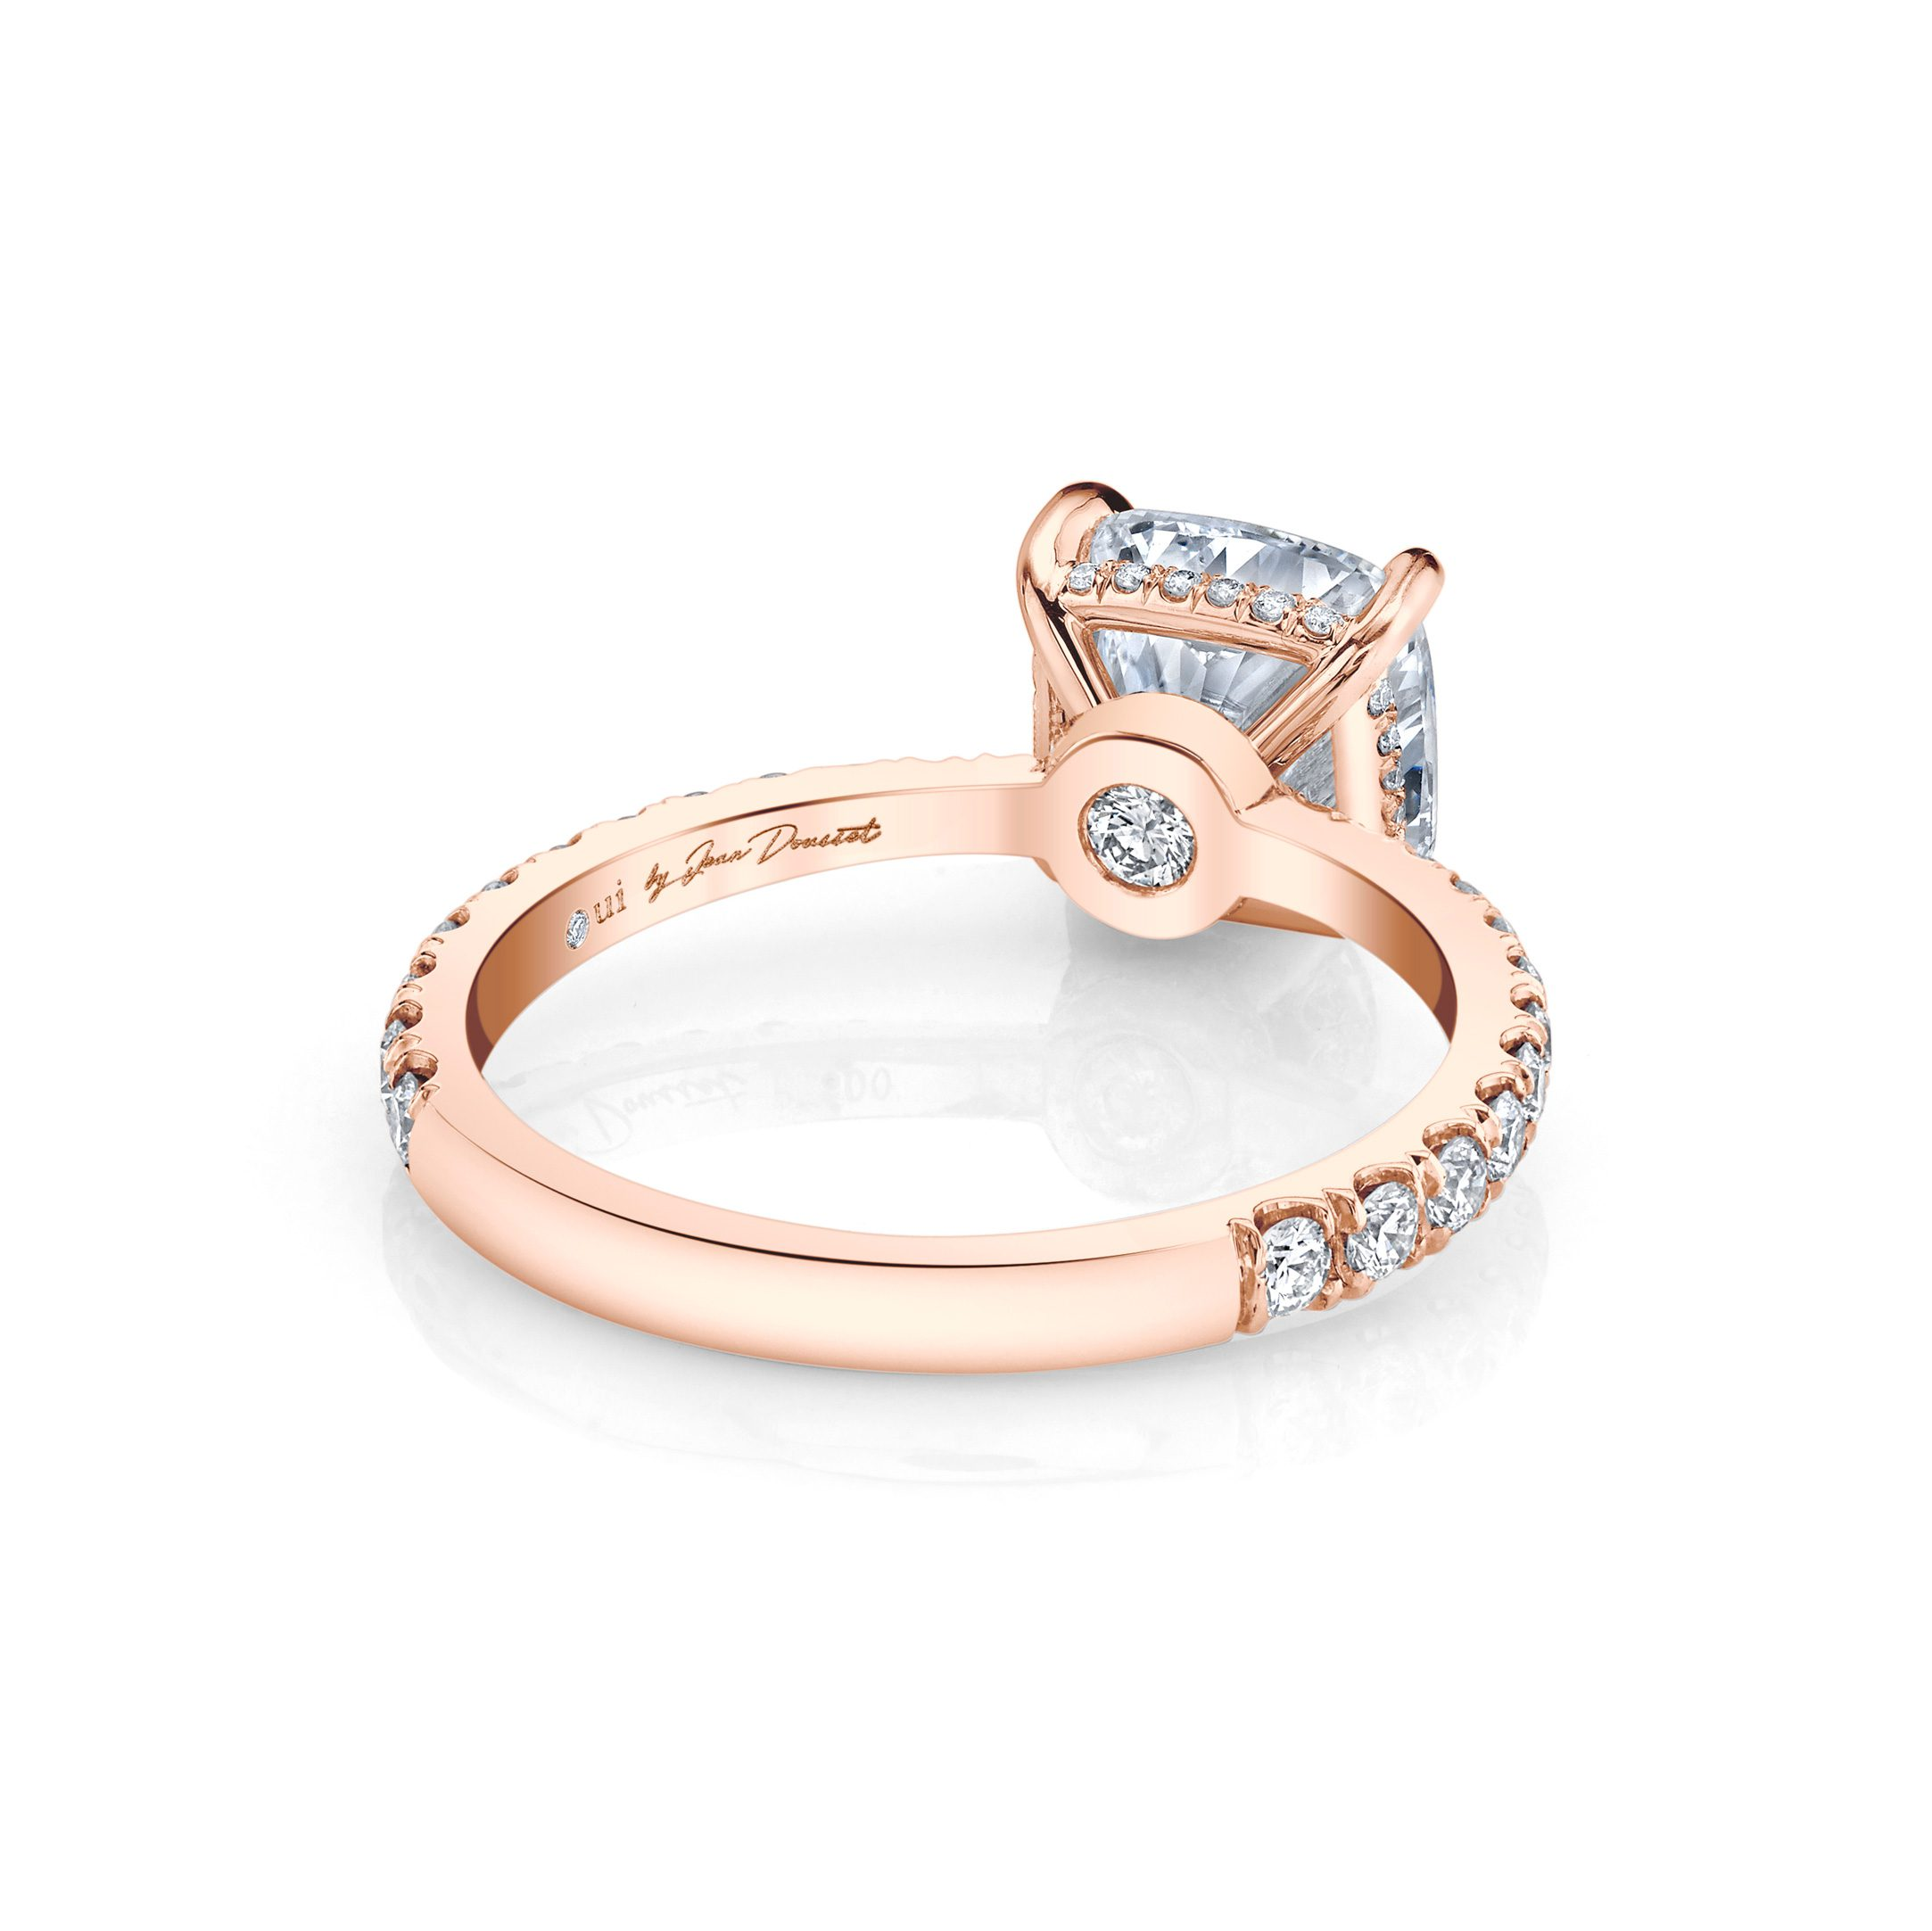 Eloise Cushion Solitaire Engagement Ring with a diamond pavé band in 18k Rose Gold Back View by Oui by Jean Dousset